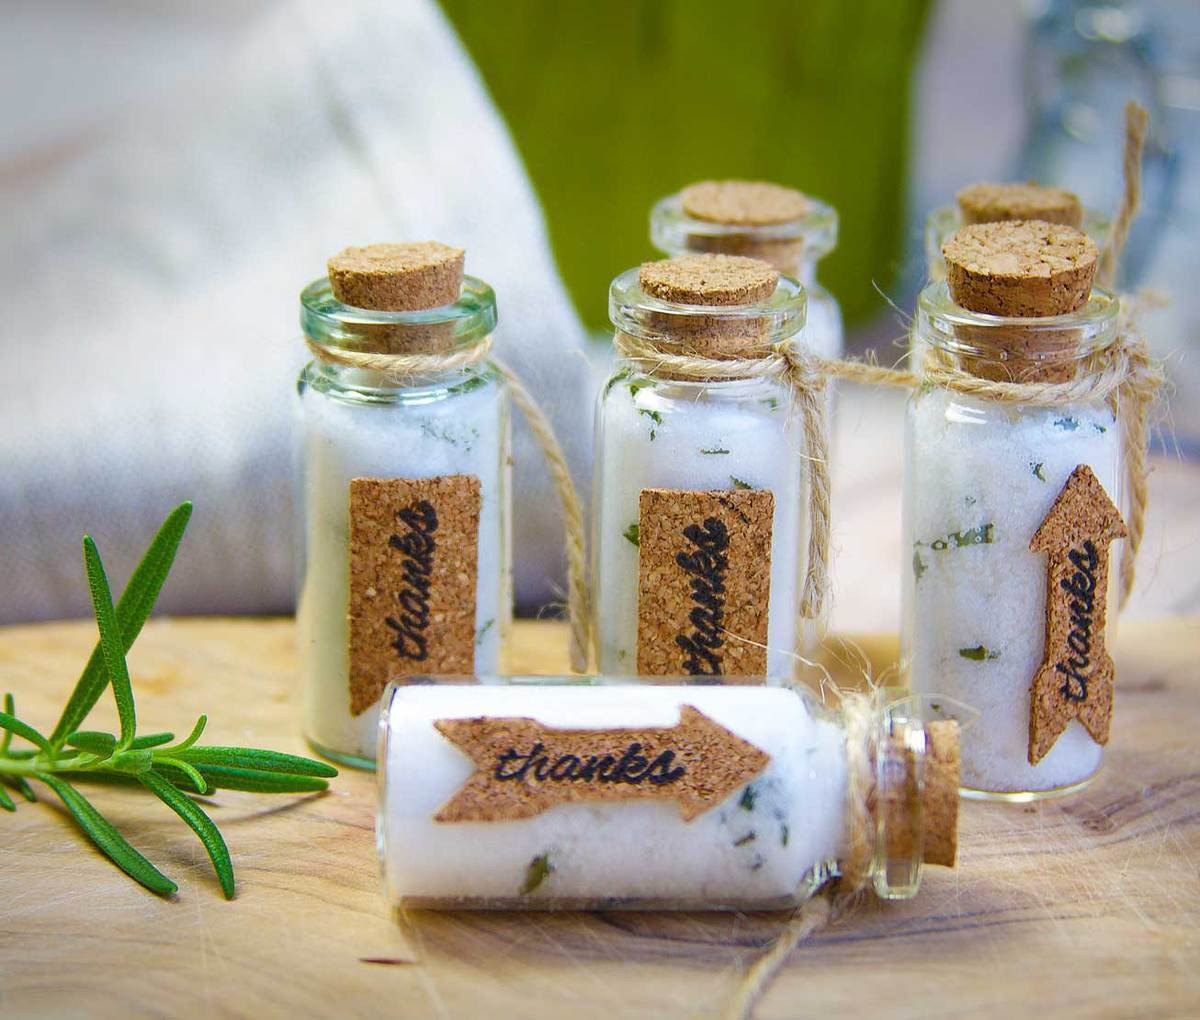 Best ideas about Wedding Favors DIY . Save or Pin Ideas for DIY Winter Wedding Party Favors Now.